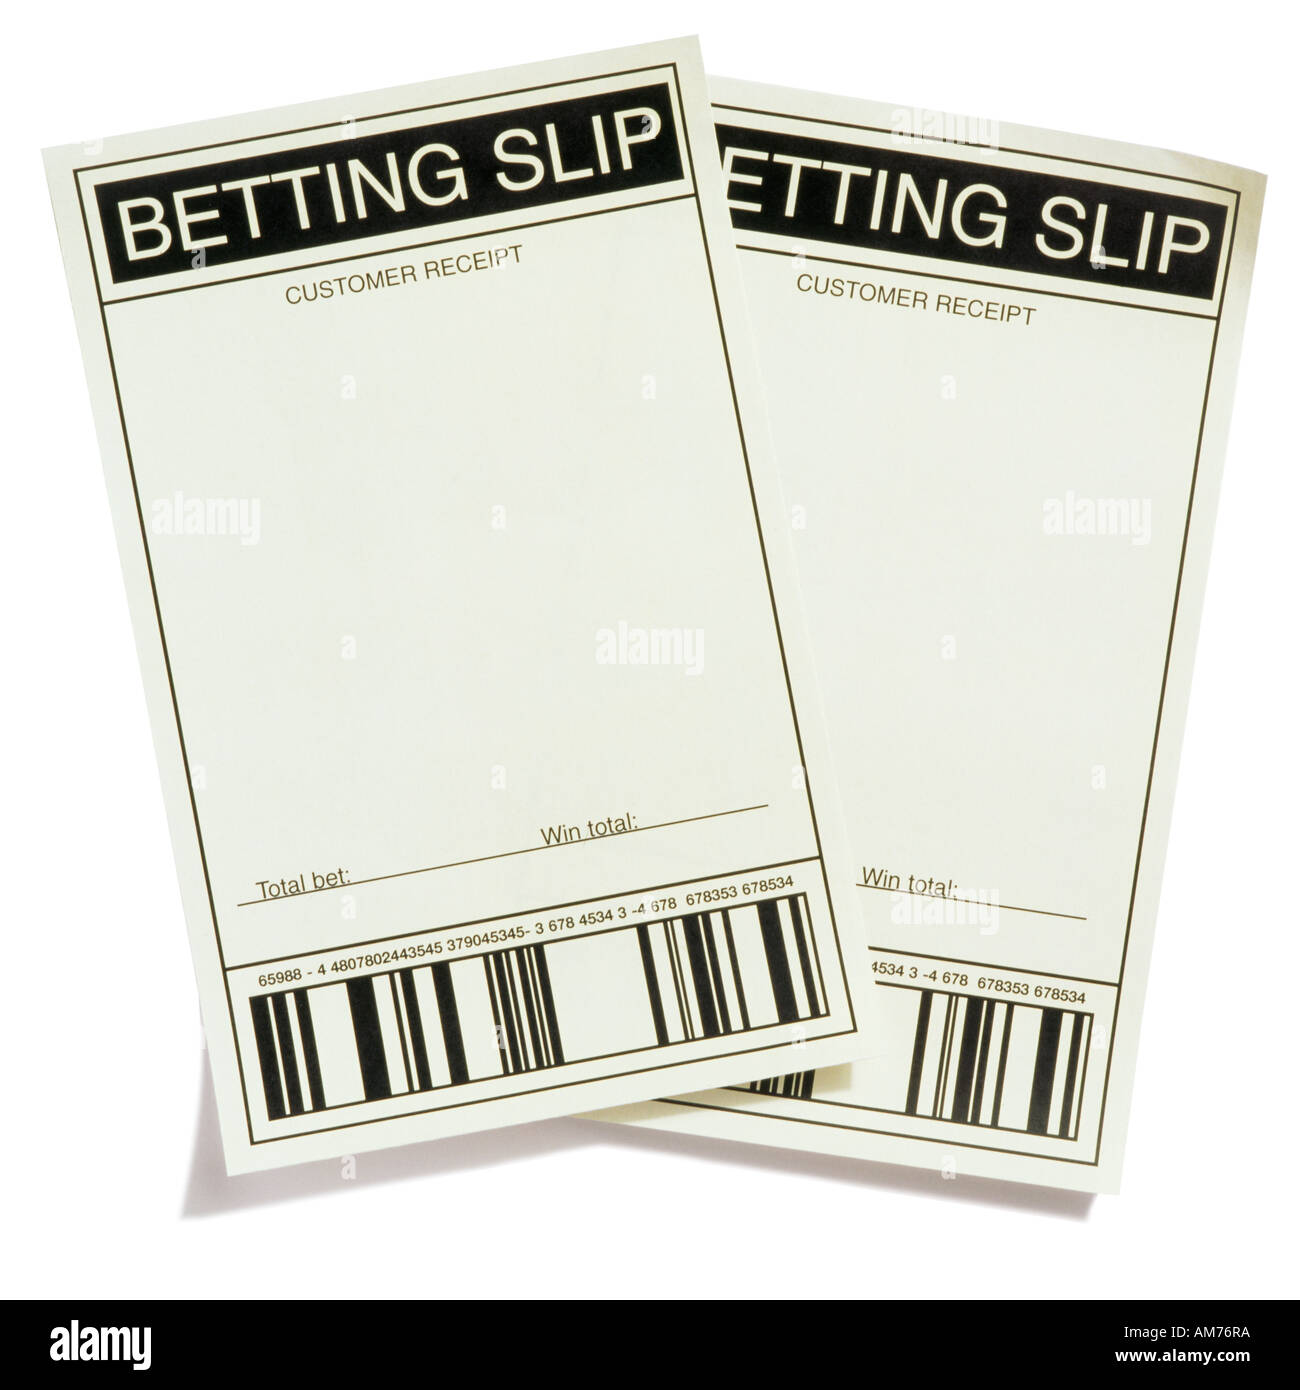 Betting slips fcs national championship betting line